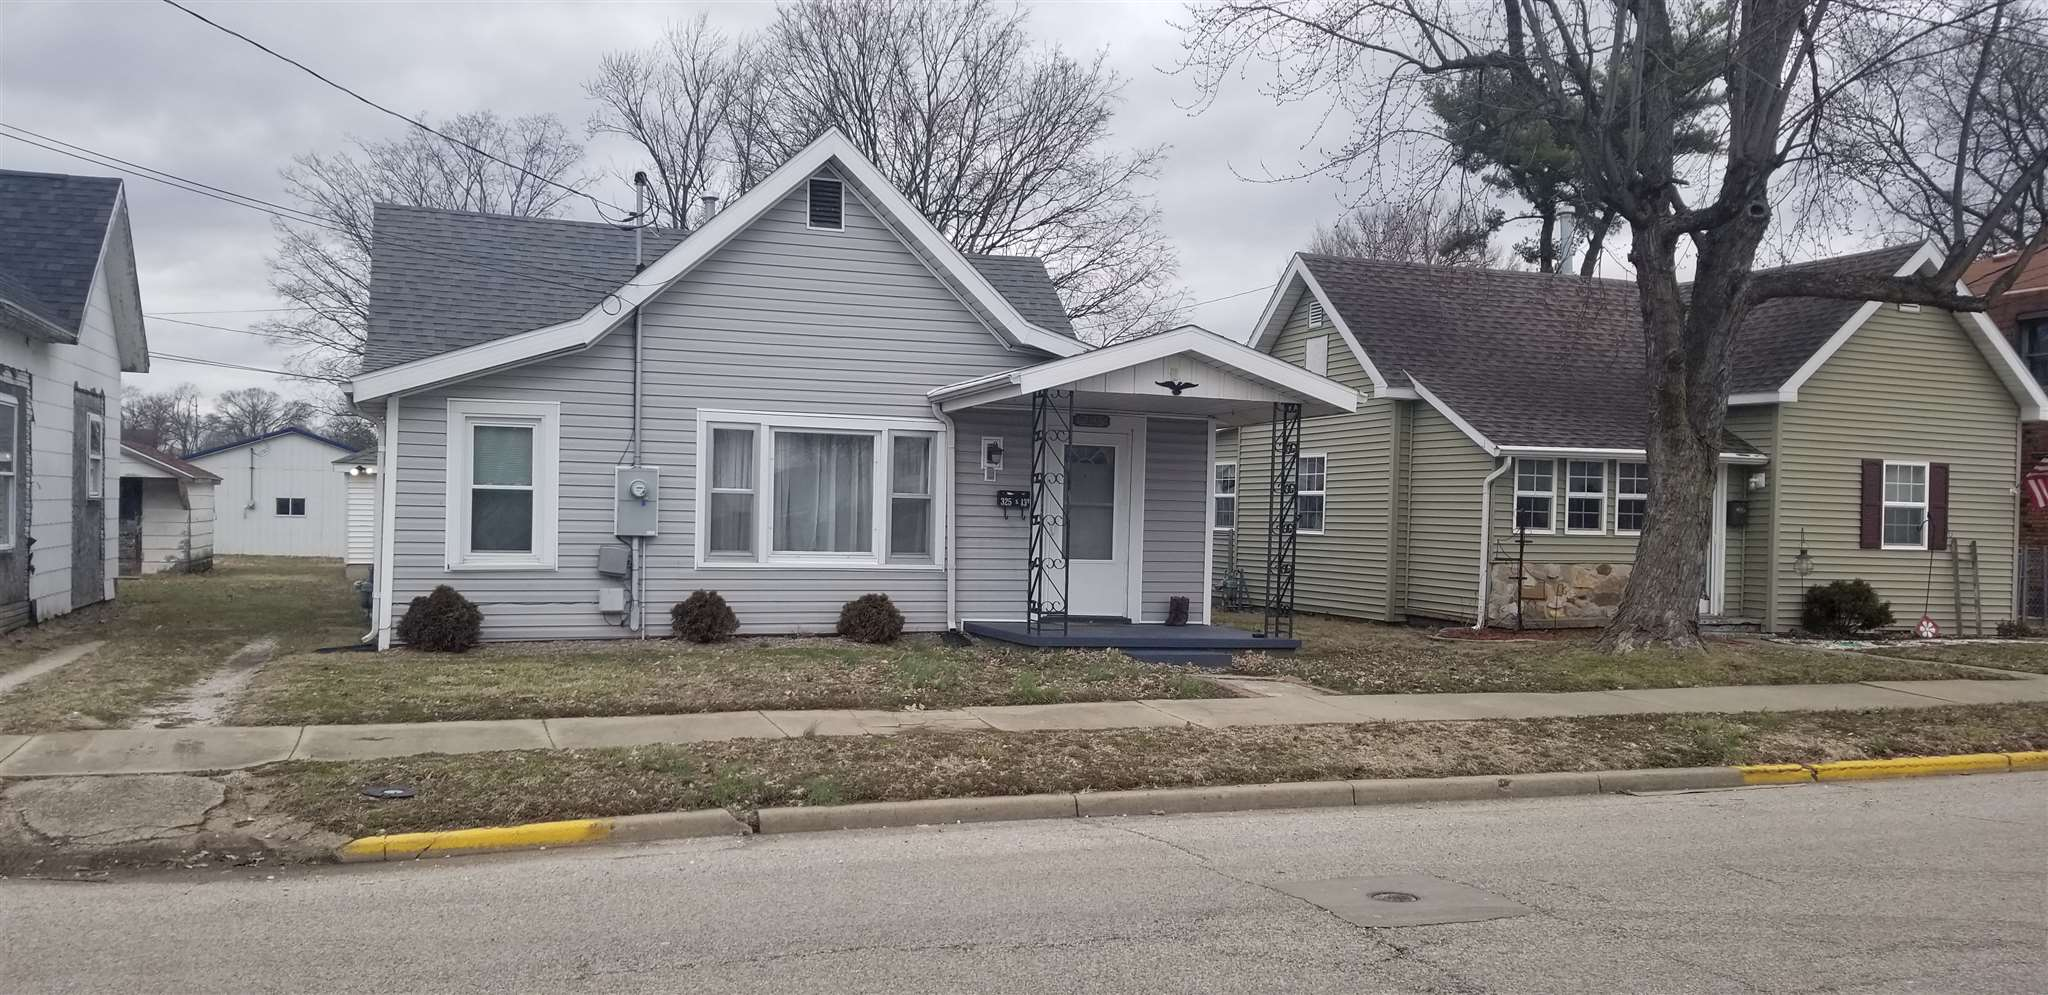 325 S 13th Street, Vincennes, IN 47591